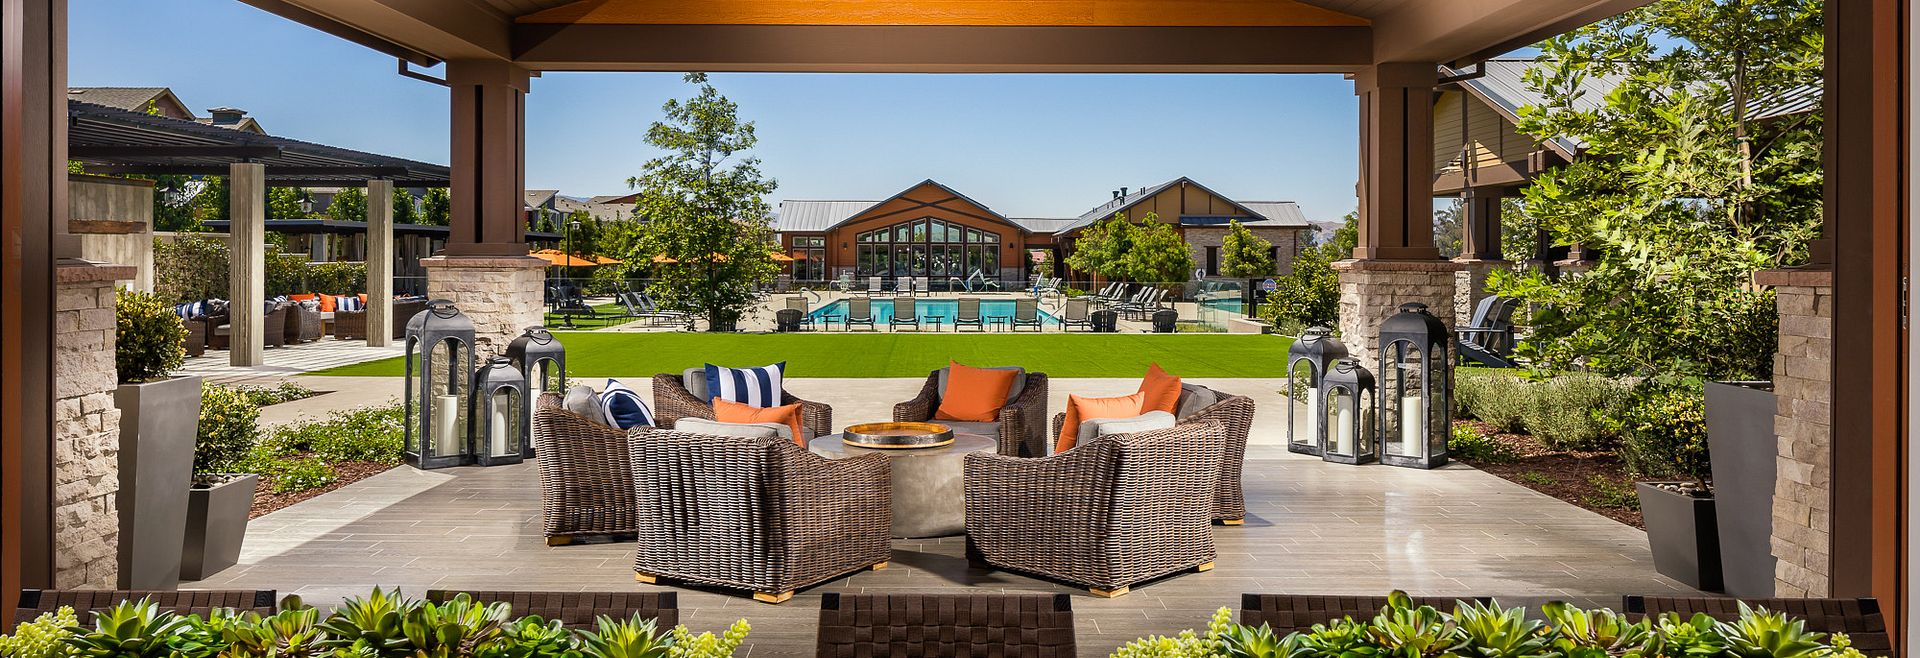 Sage Community Patio